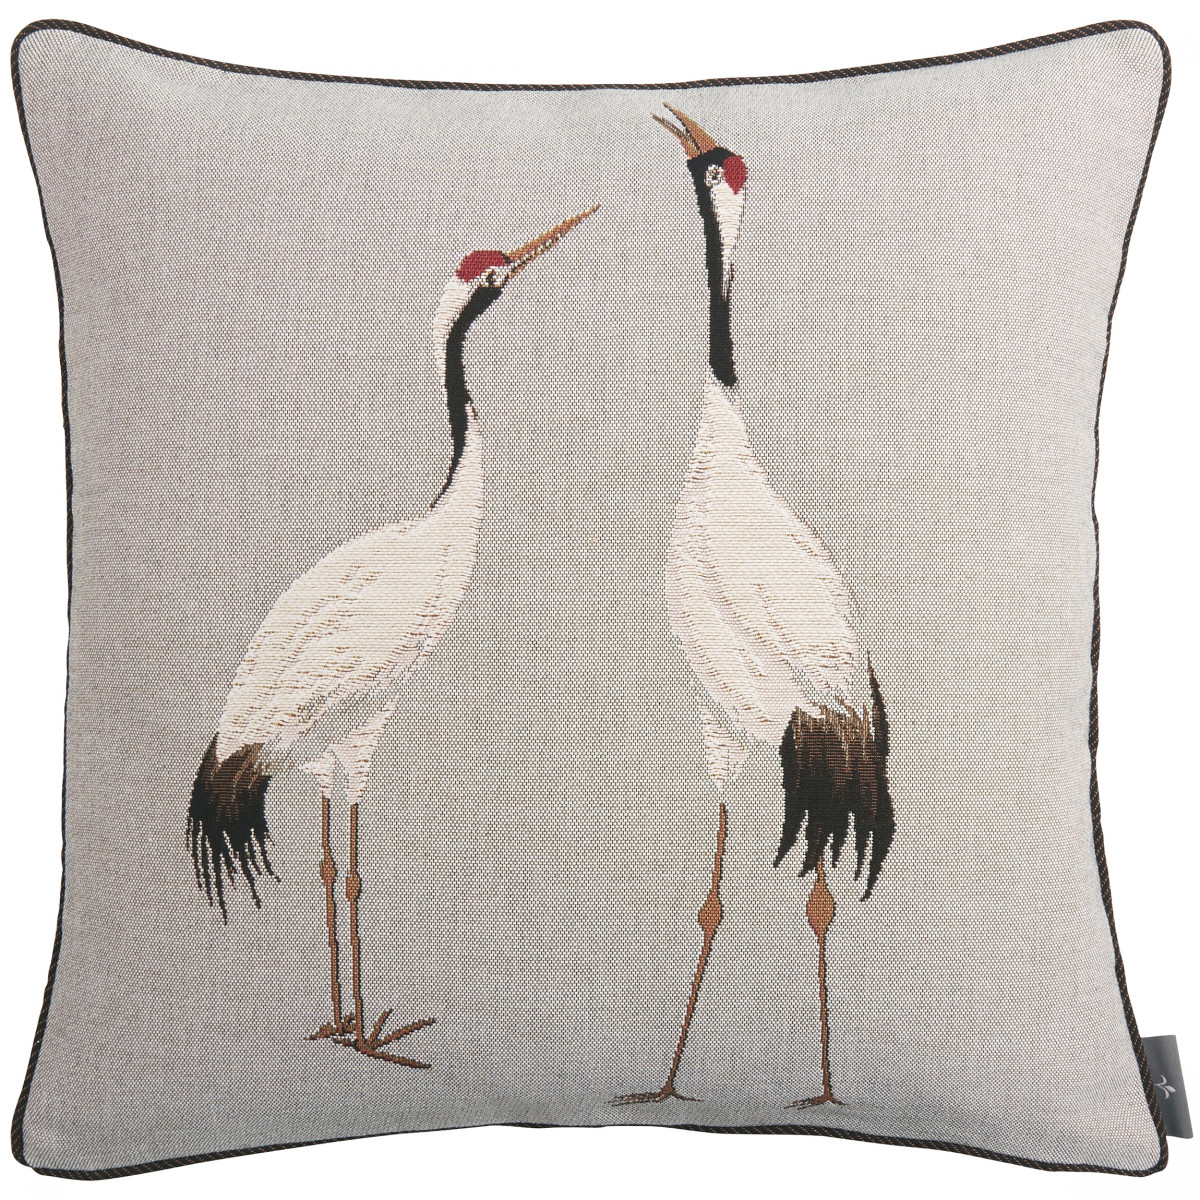 Coussin tapisserie deux grues blanches made in france gris   50x50